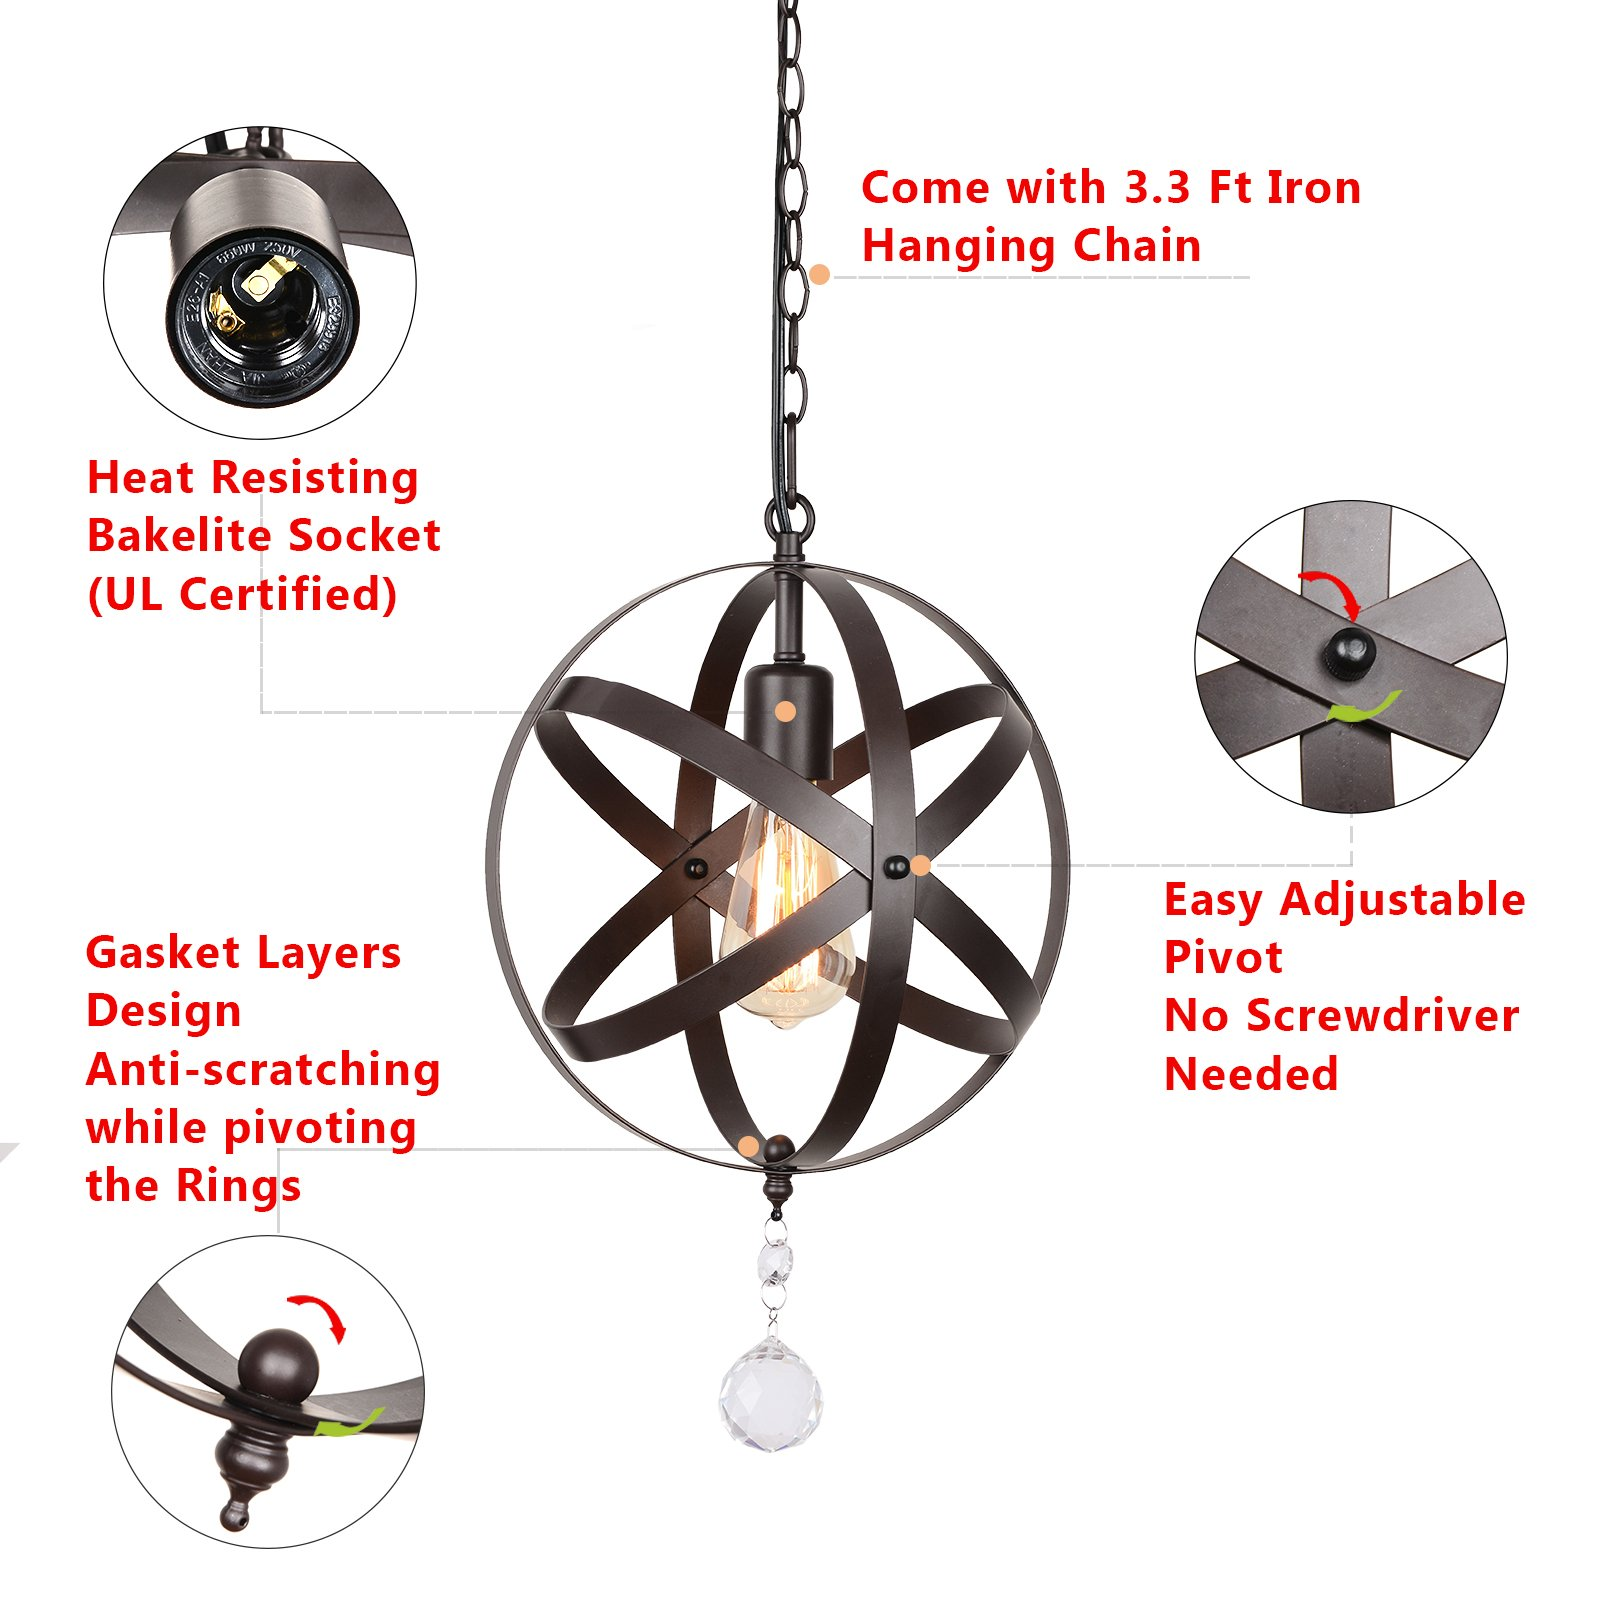 Creatgeek Industrial Globe Chandelier with 15 Ft Plug in Cord, Metal Hanging Chain and On/Off Dimmer Switch, Perfect Vintage Oil Rubbed Bronze Orb Swag Pendant Lights for Home Decor by Creatgeek (Image #4)